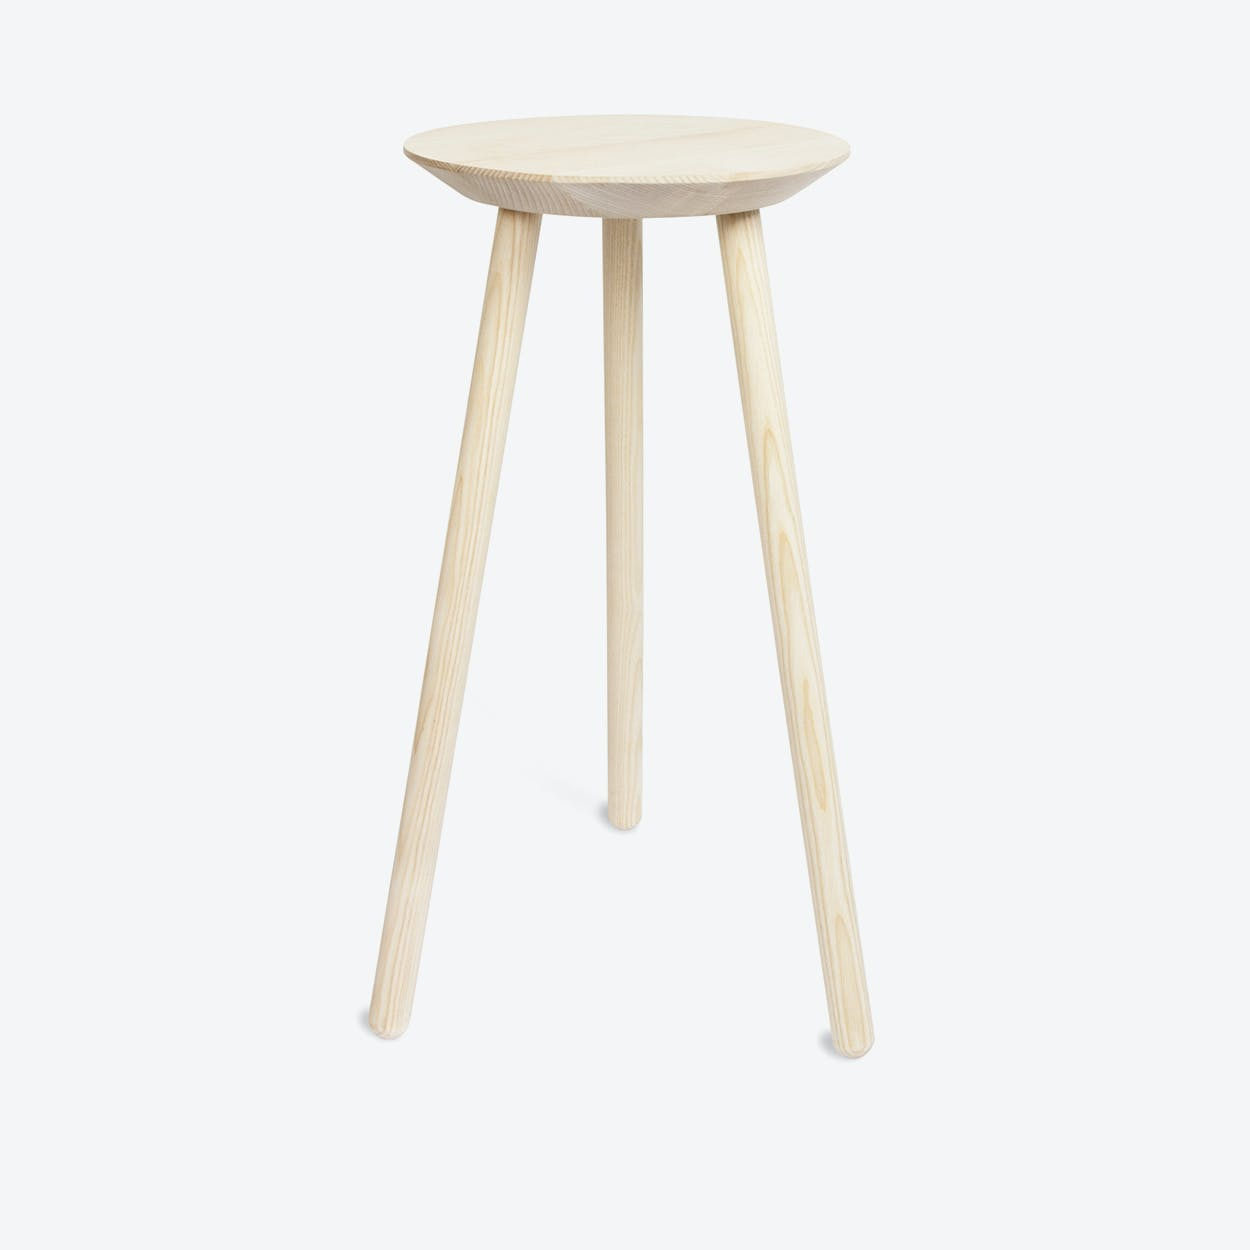 Cheers Sidetable in Natural Ash Wood